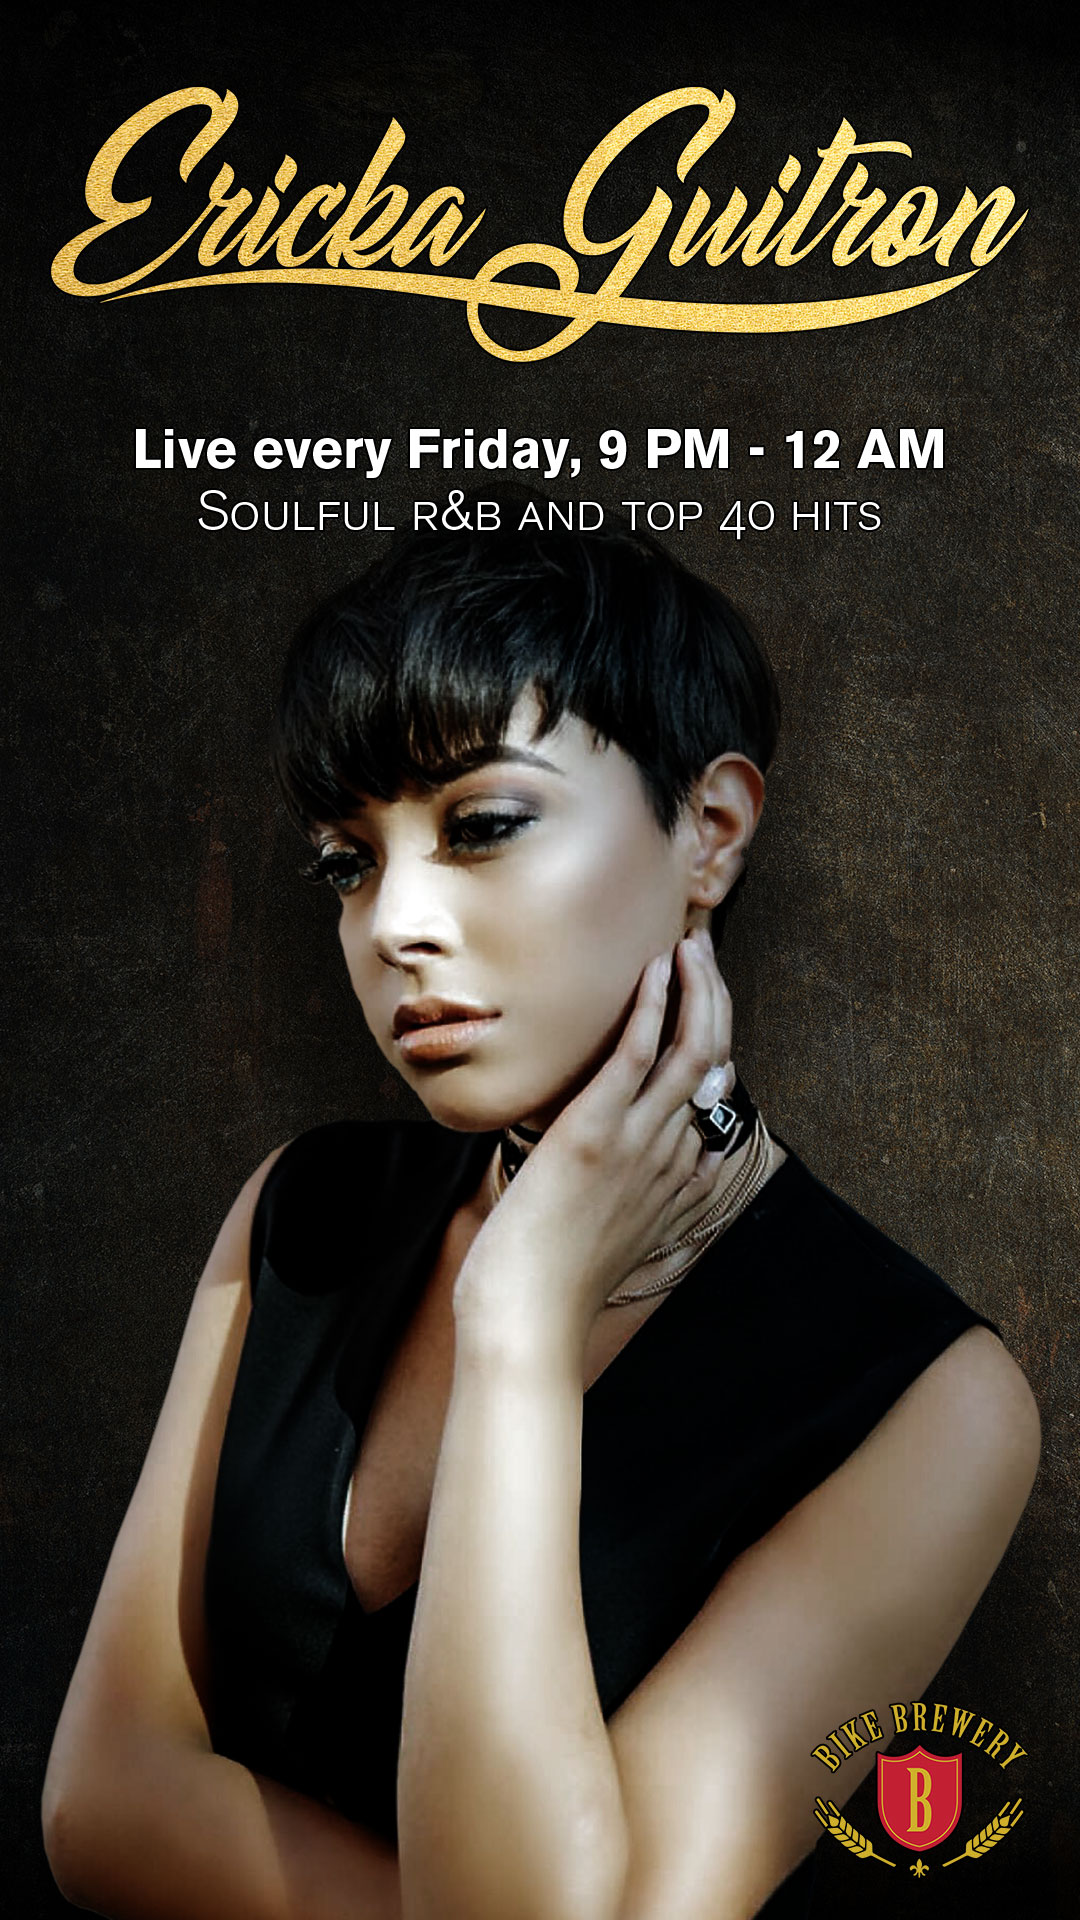 Ericka Guitron live every Friday, 8:30pm - 12:30am. Soulful R&B and top 40 hits